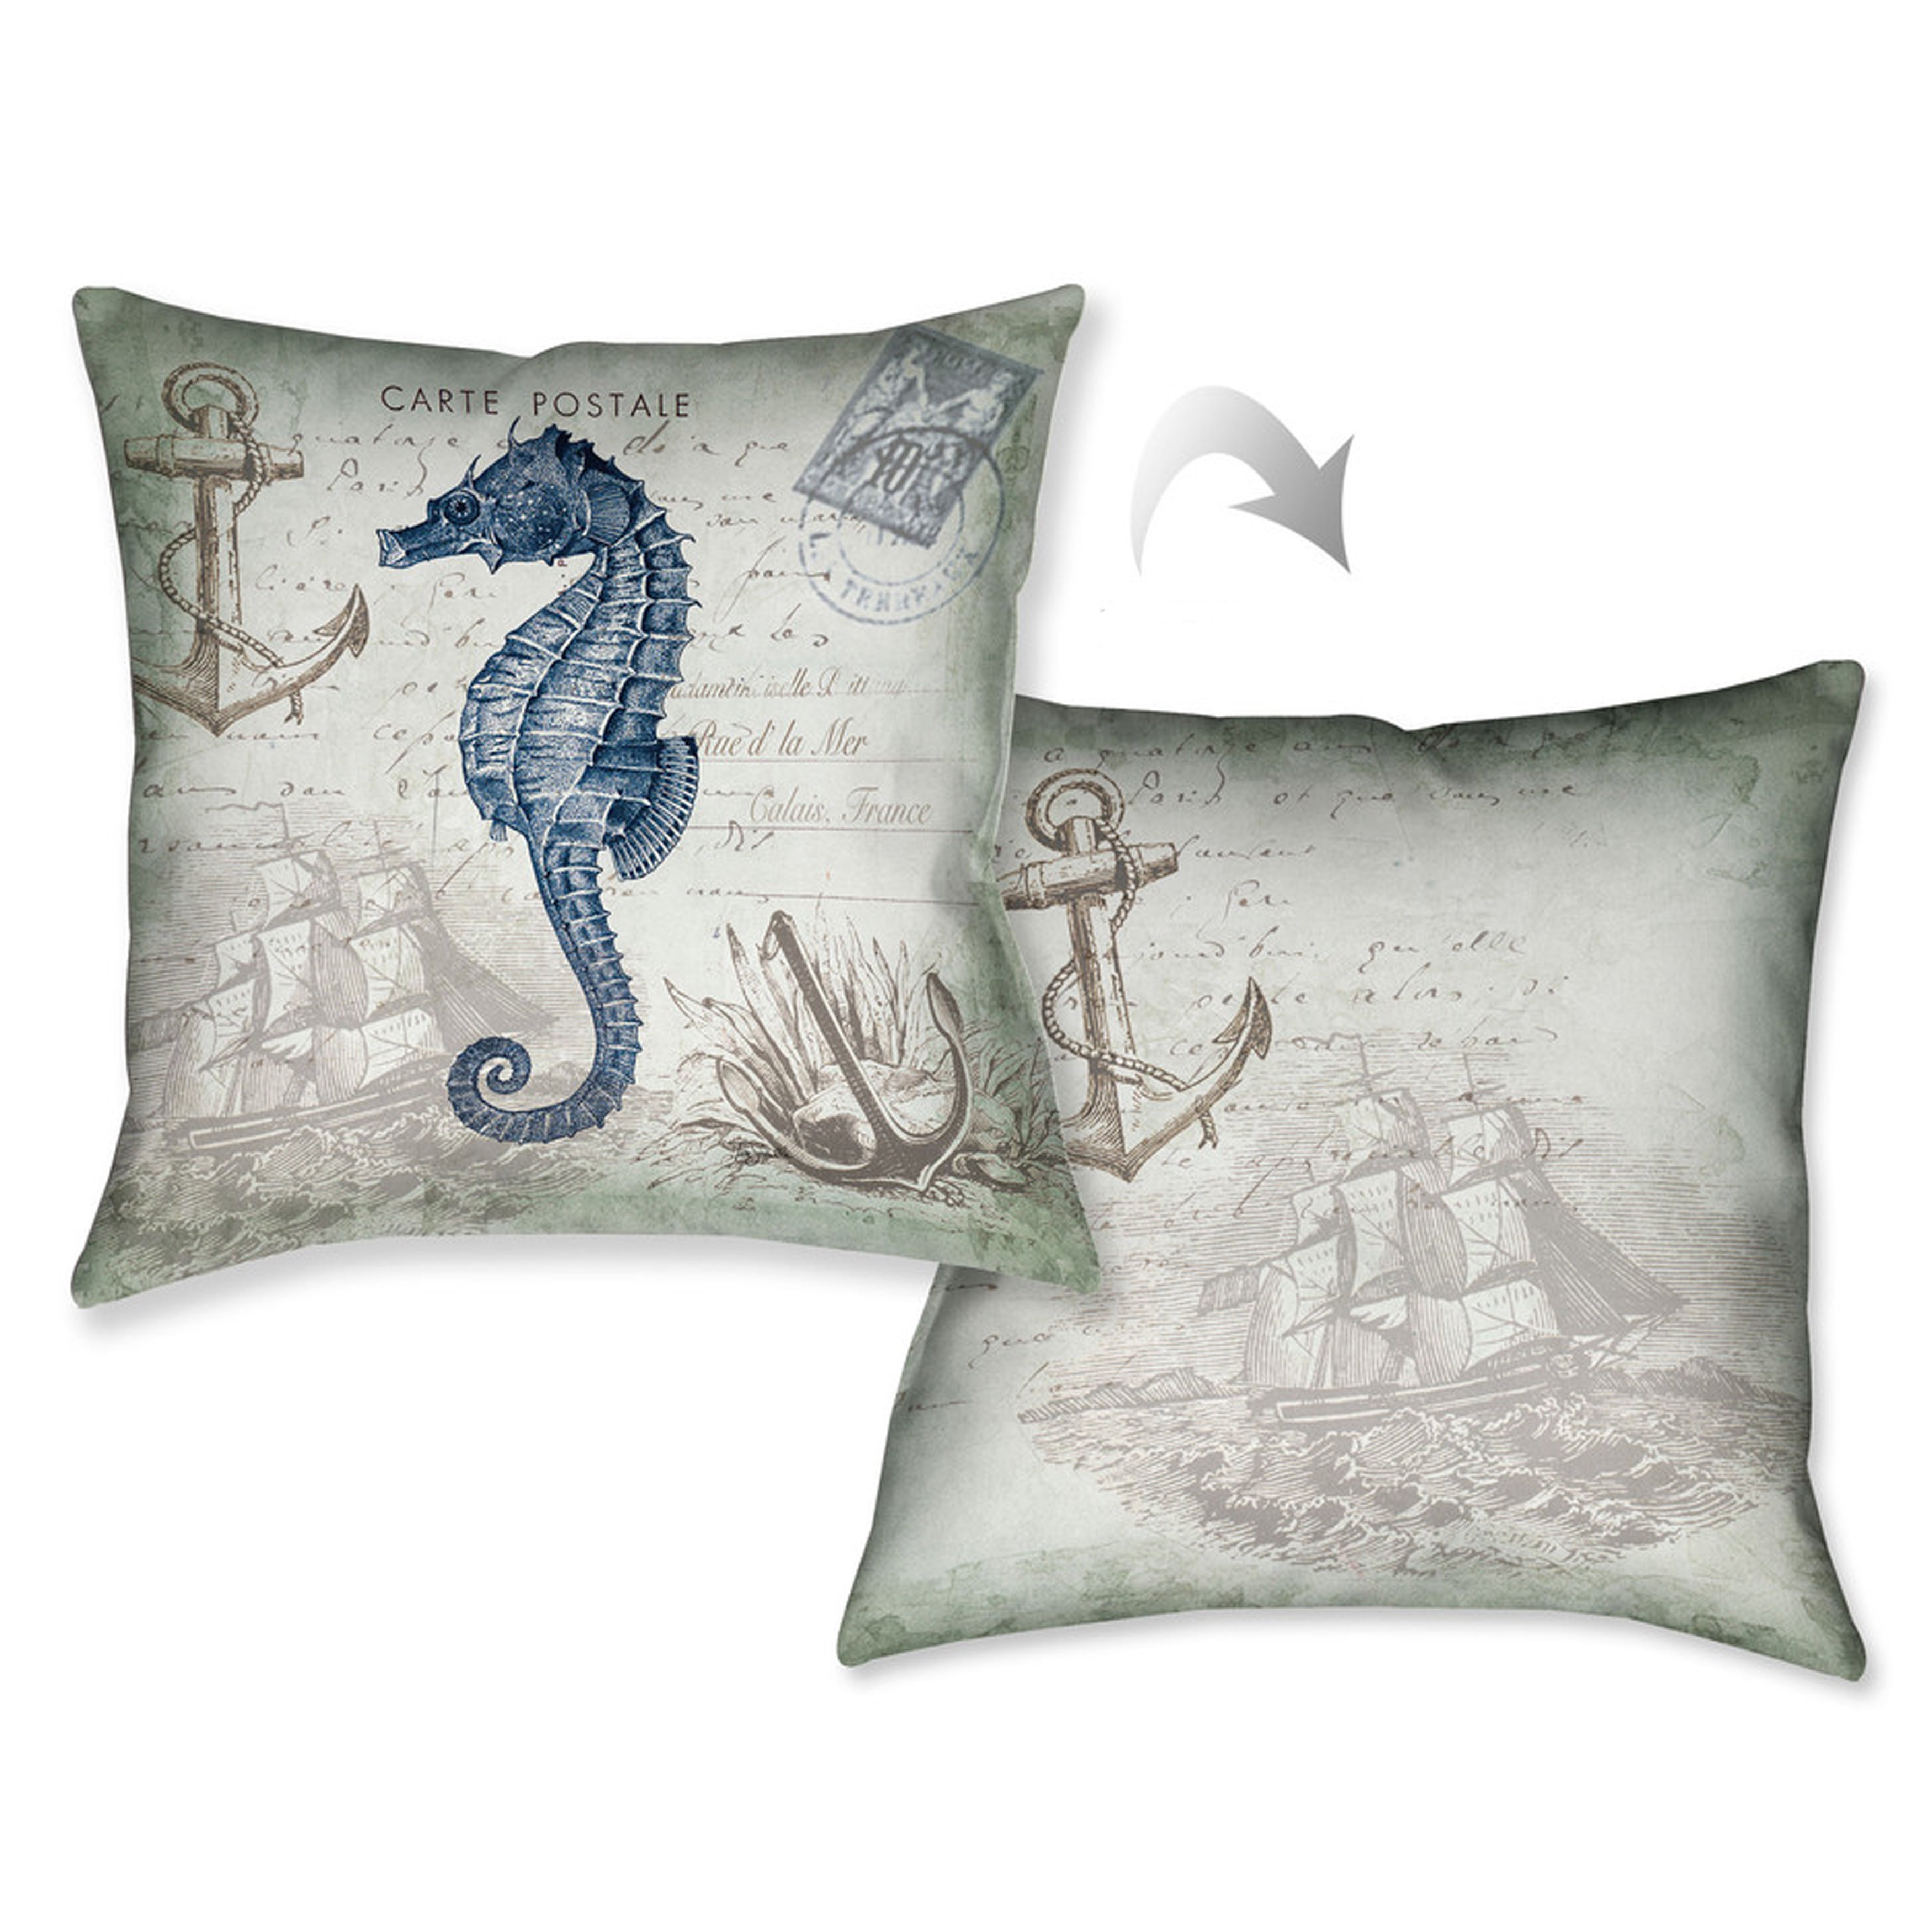 Laural Home Vintage Seaside Maritime Seahorse Decorative Throw Pillow 18 Inches X 18 Inches On Sale Overstock 10992532